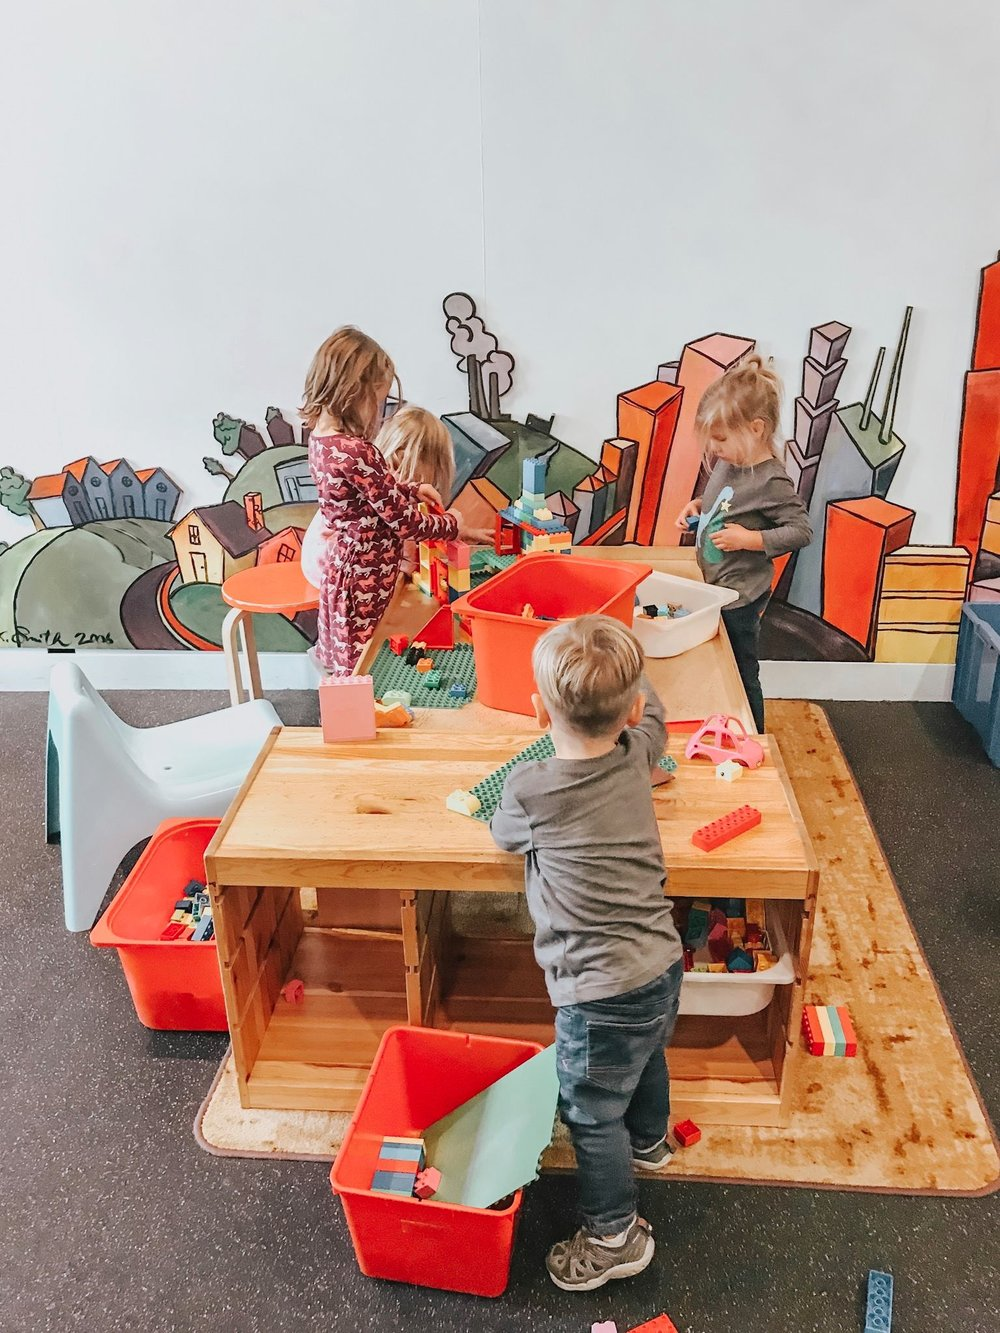 The kids playing in the Building Zone Exhibit